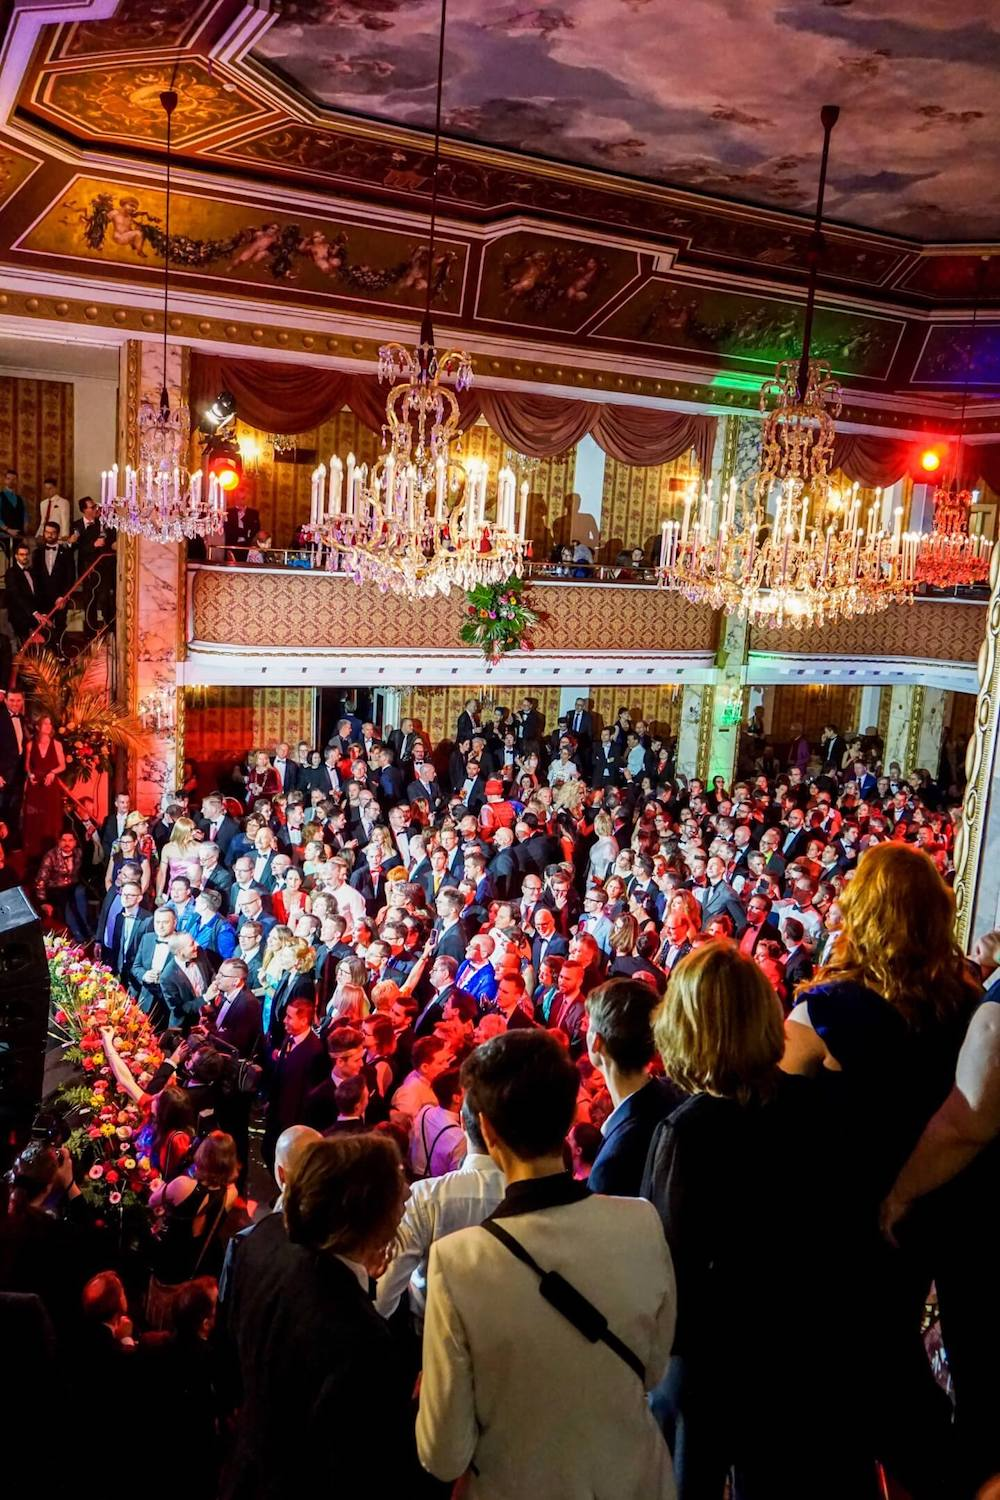 Opening Ceremony of the Vienna Rainbow Ball (Wiener Regenbogenball) - Austria